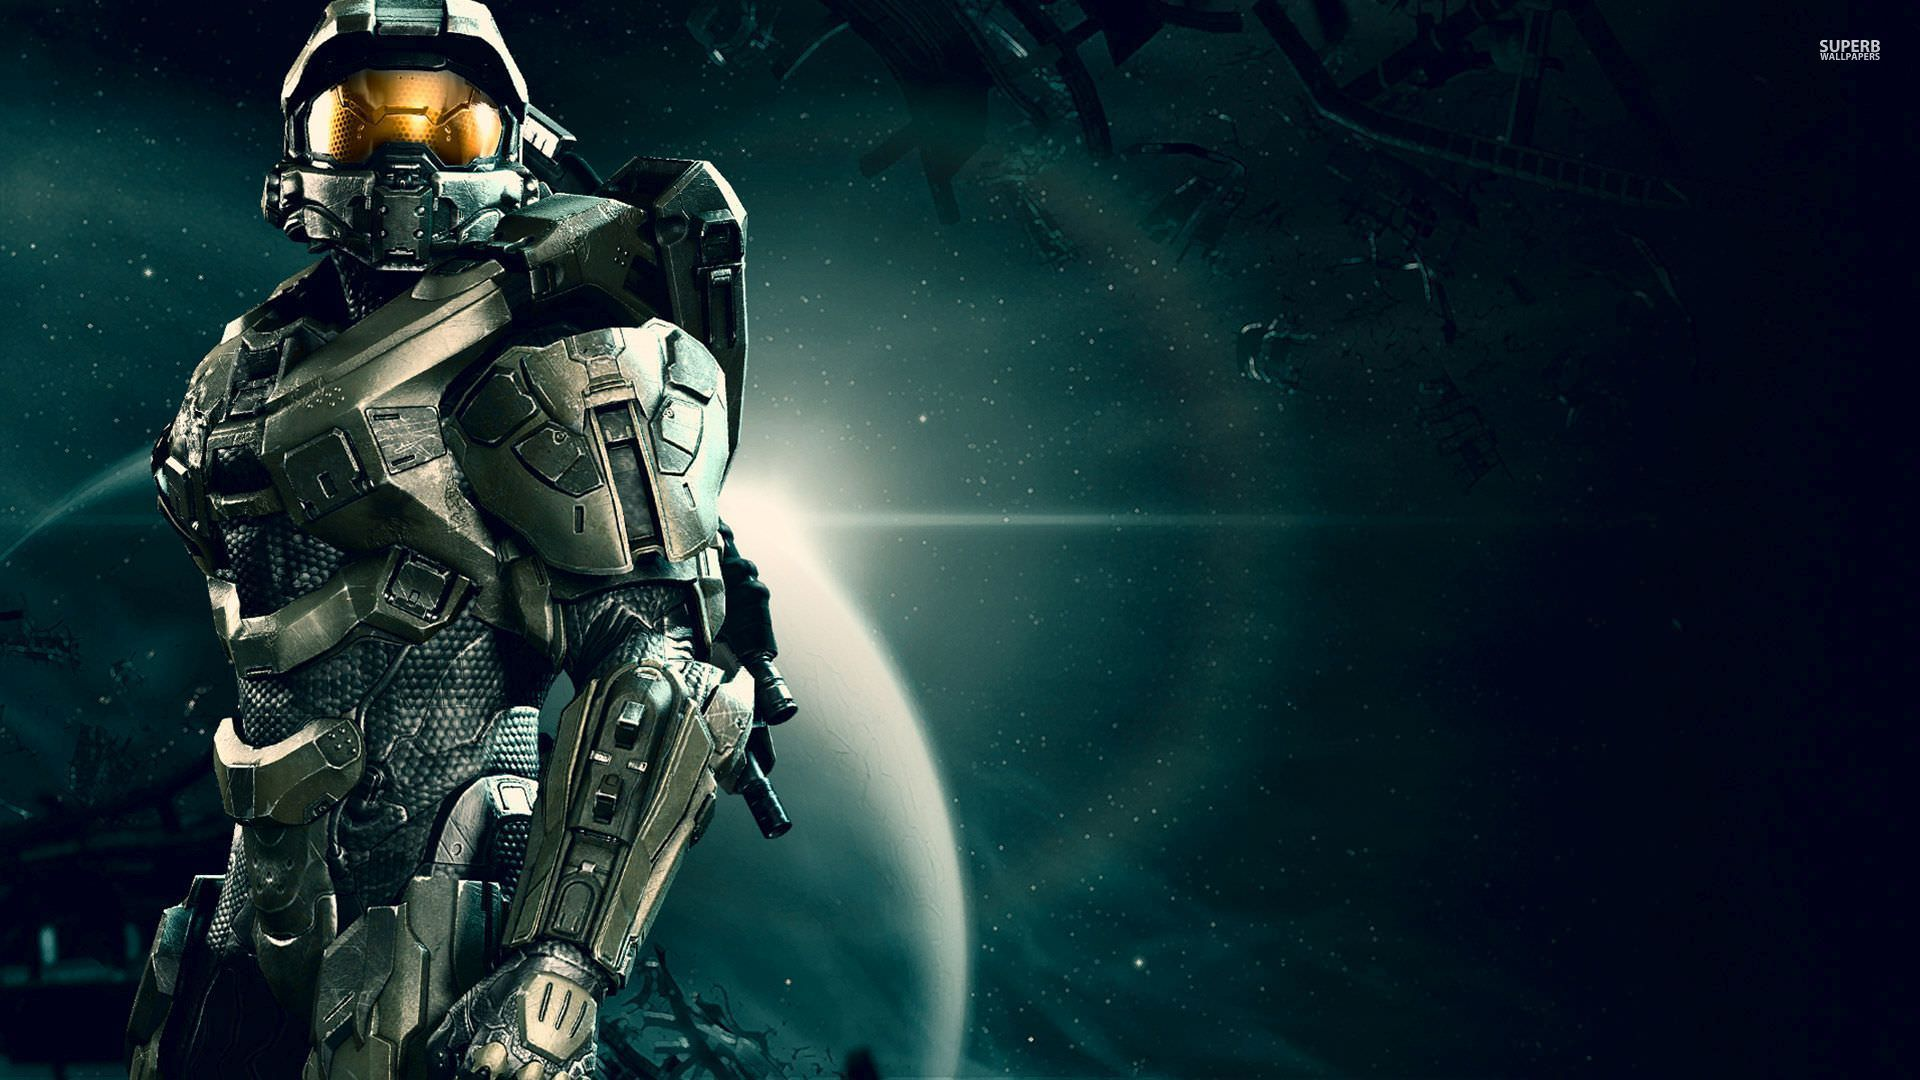 halo-the-master-chief-collection-31784-1920x1080